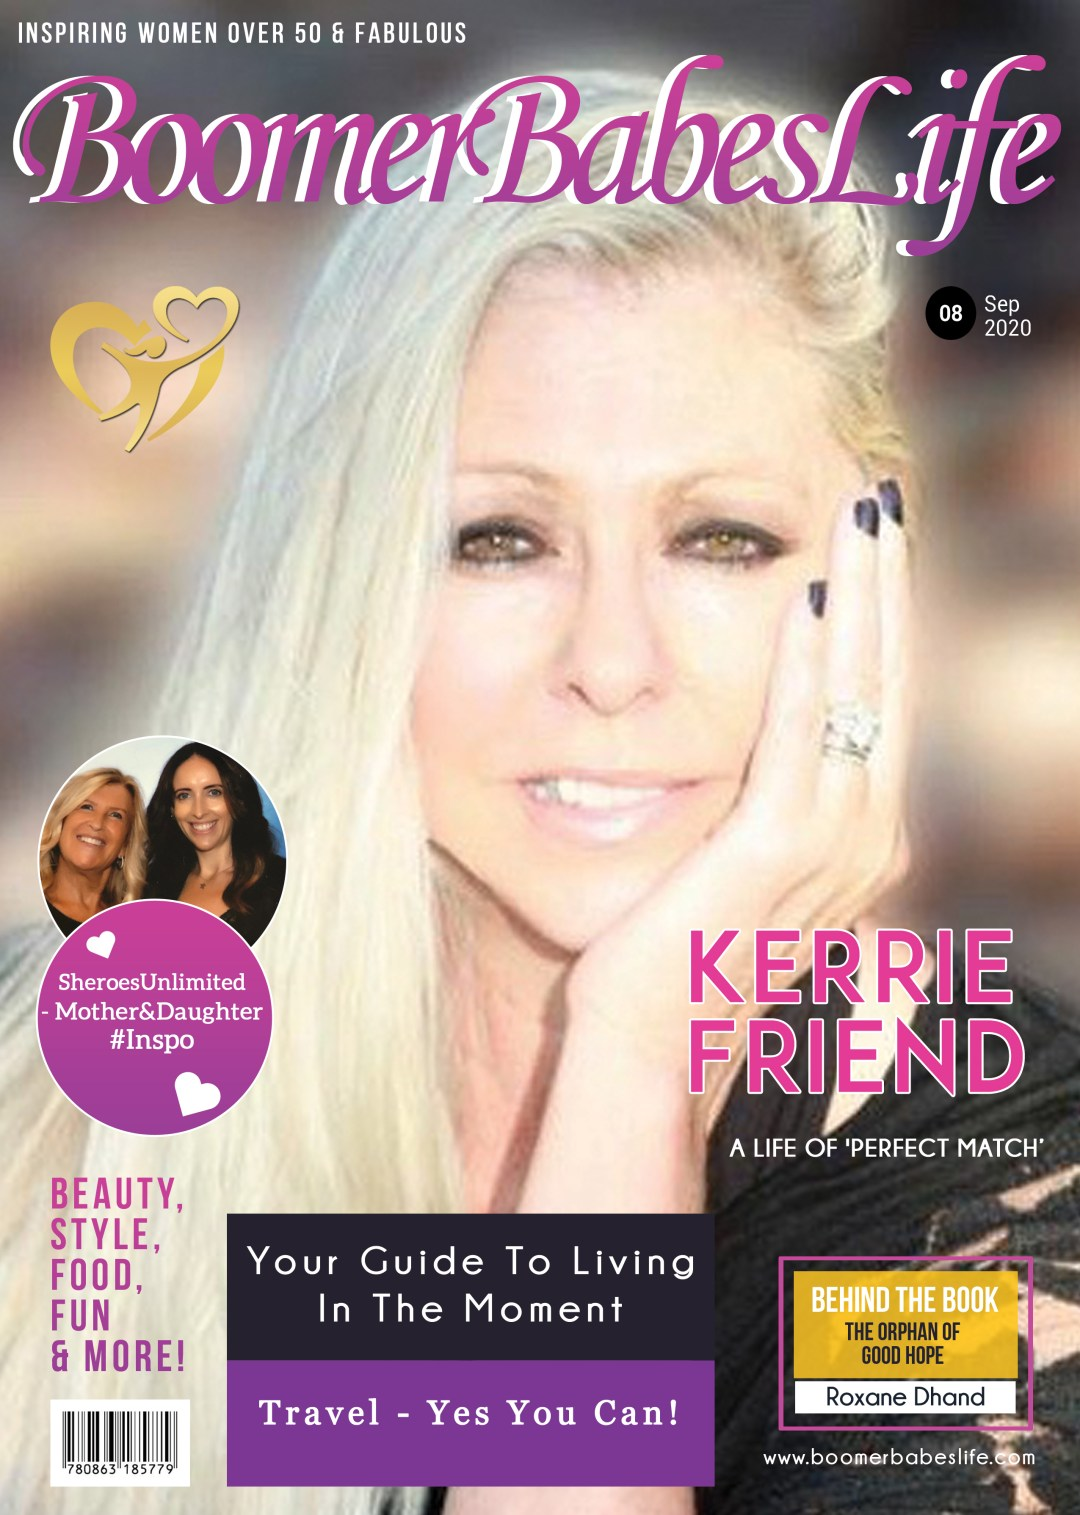 Boomerbabeslife Magazine For The Month Of September